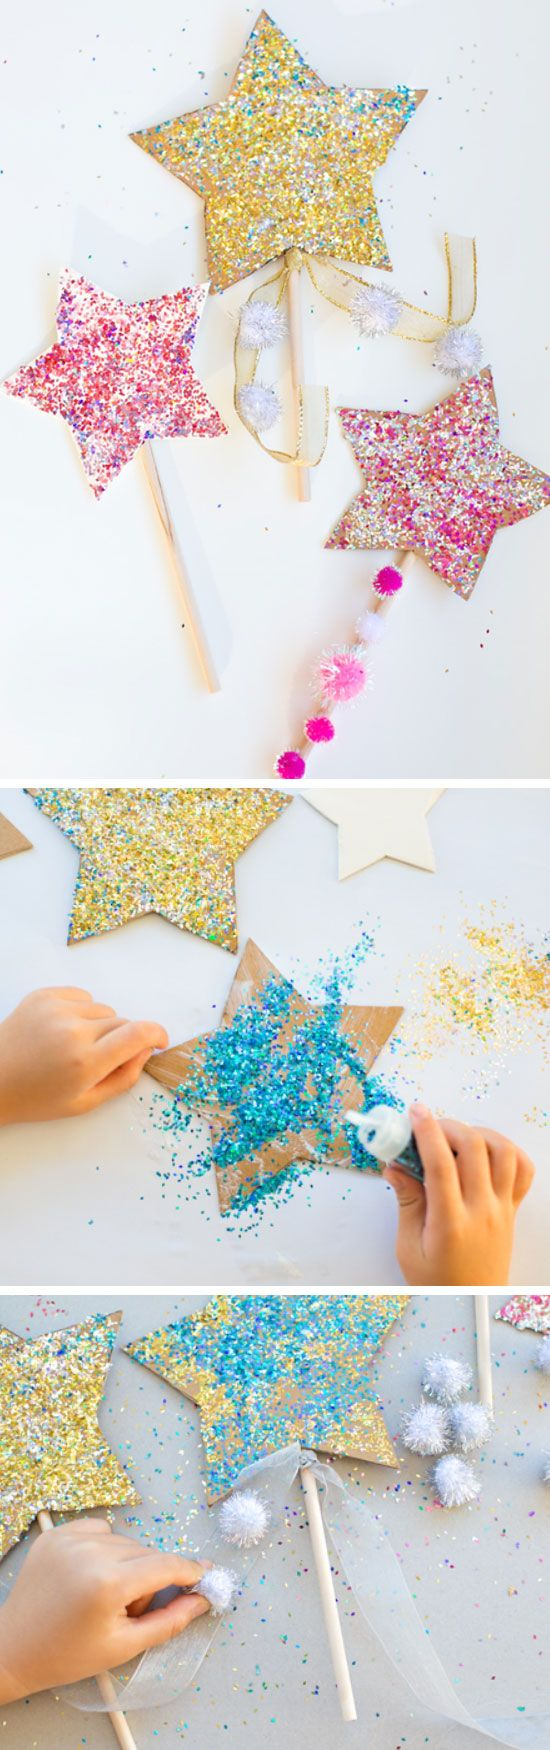 DIY Glitter Celebration Star Wands | DIY New Years Eve Decorations for Kids | DIY New Years Eve Party Ideas for Kids ...tutorial http://www.hellowonderful.co/post/DIY-GLITTER-CELEBRATION-STAR-WANDS